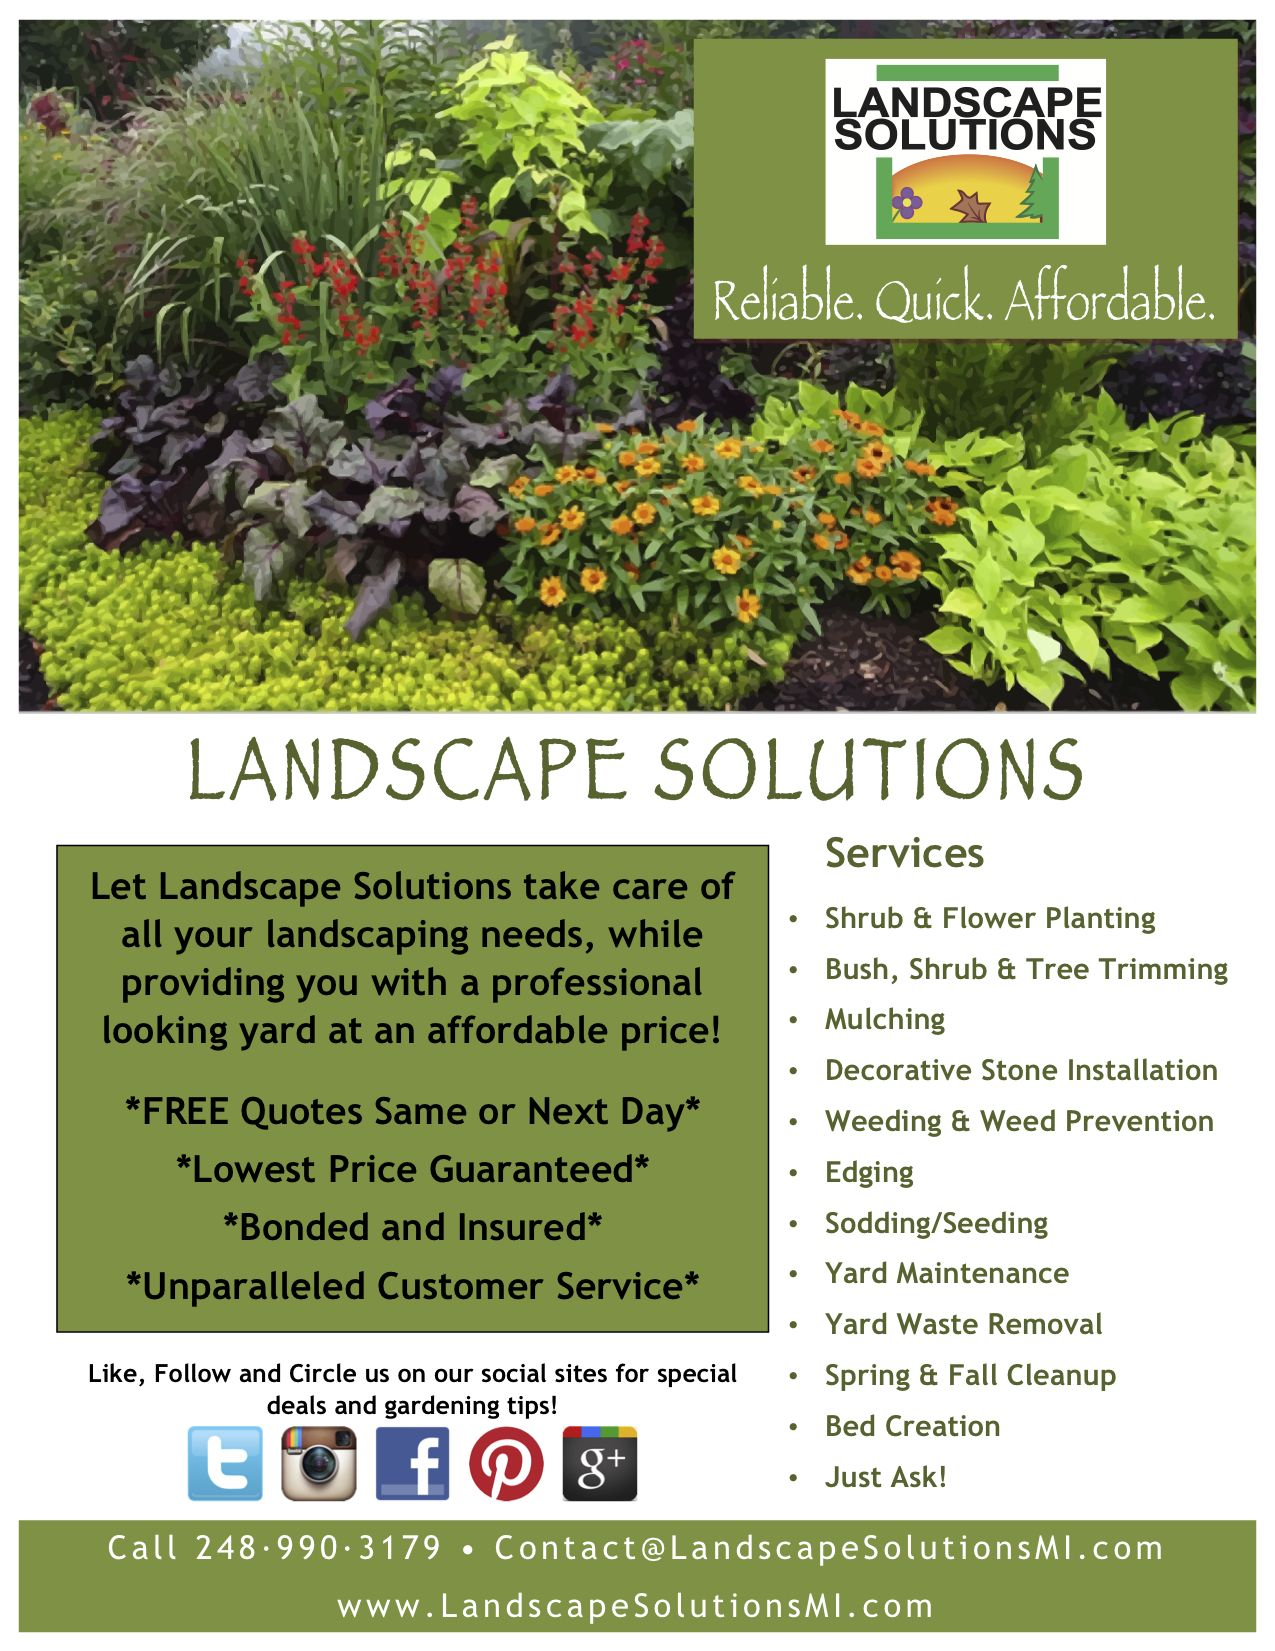 new flyers for landscape solutions going around this landscaping new flyers for landscape solutions going around this landscaping season